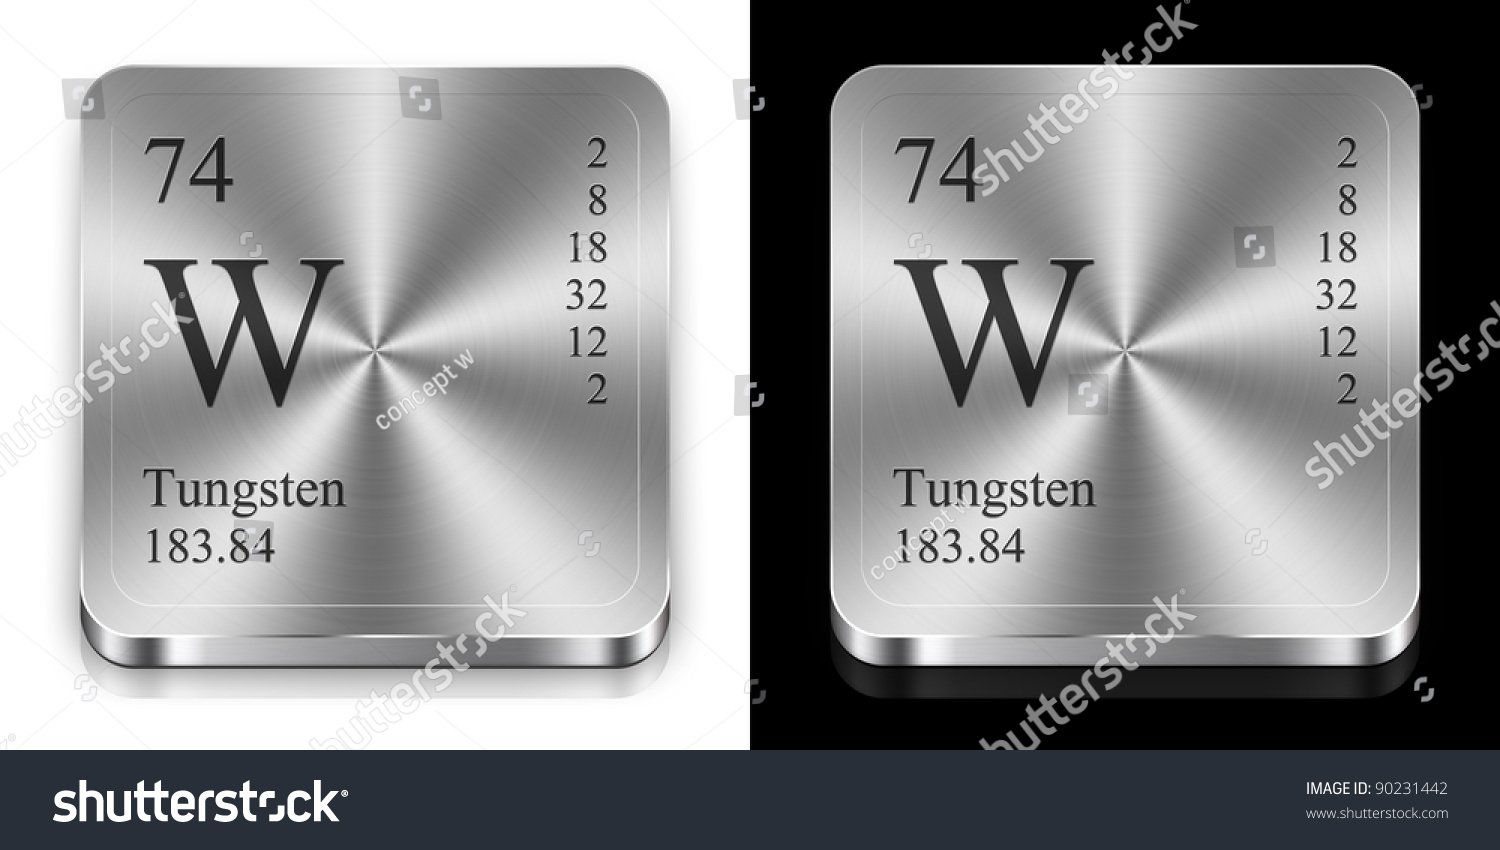 Tungsten periodic table image collections periodic table images tungsten element periodic table two steel stock illustration tungsten element of the periodic table two steel gamestrikefo Choice Image